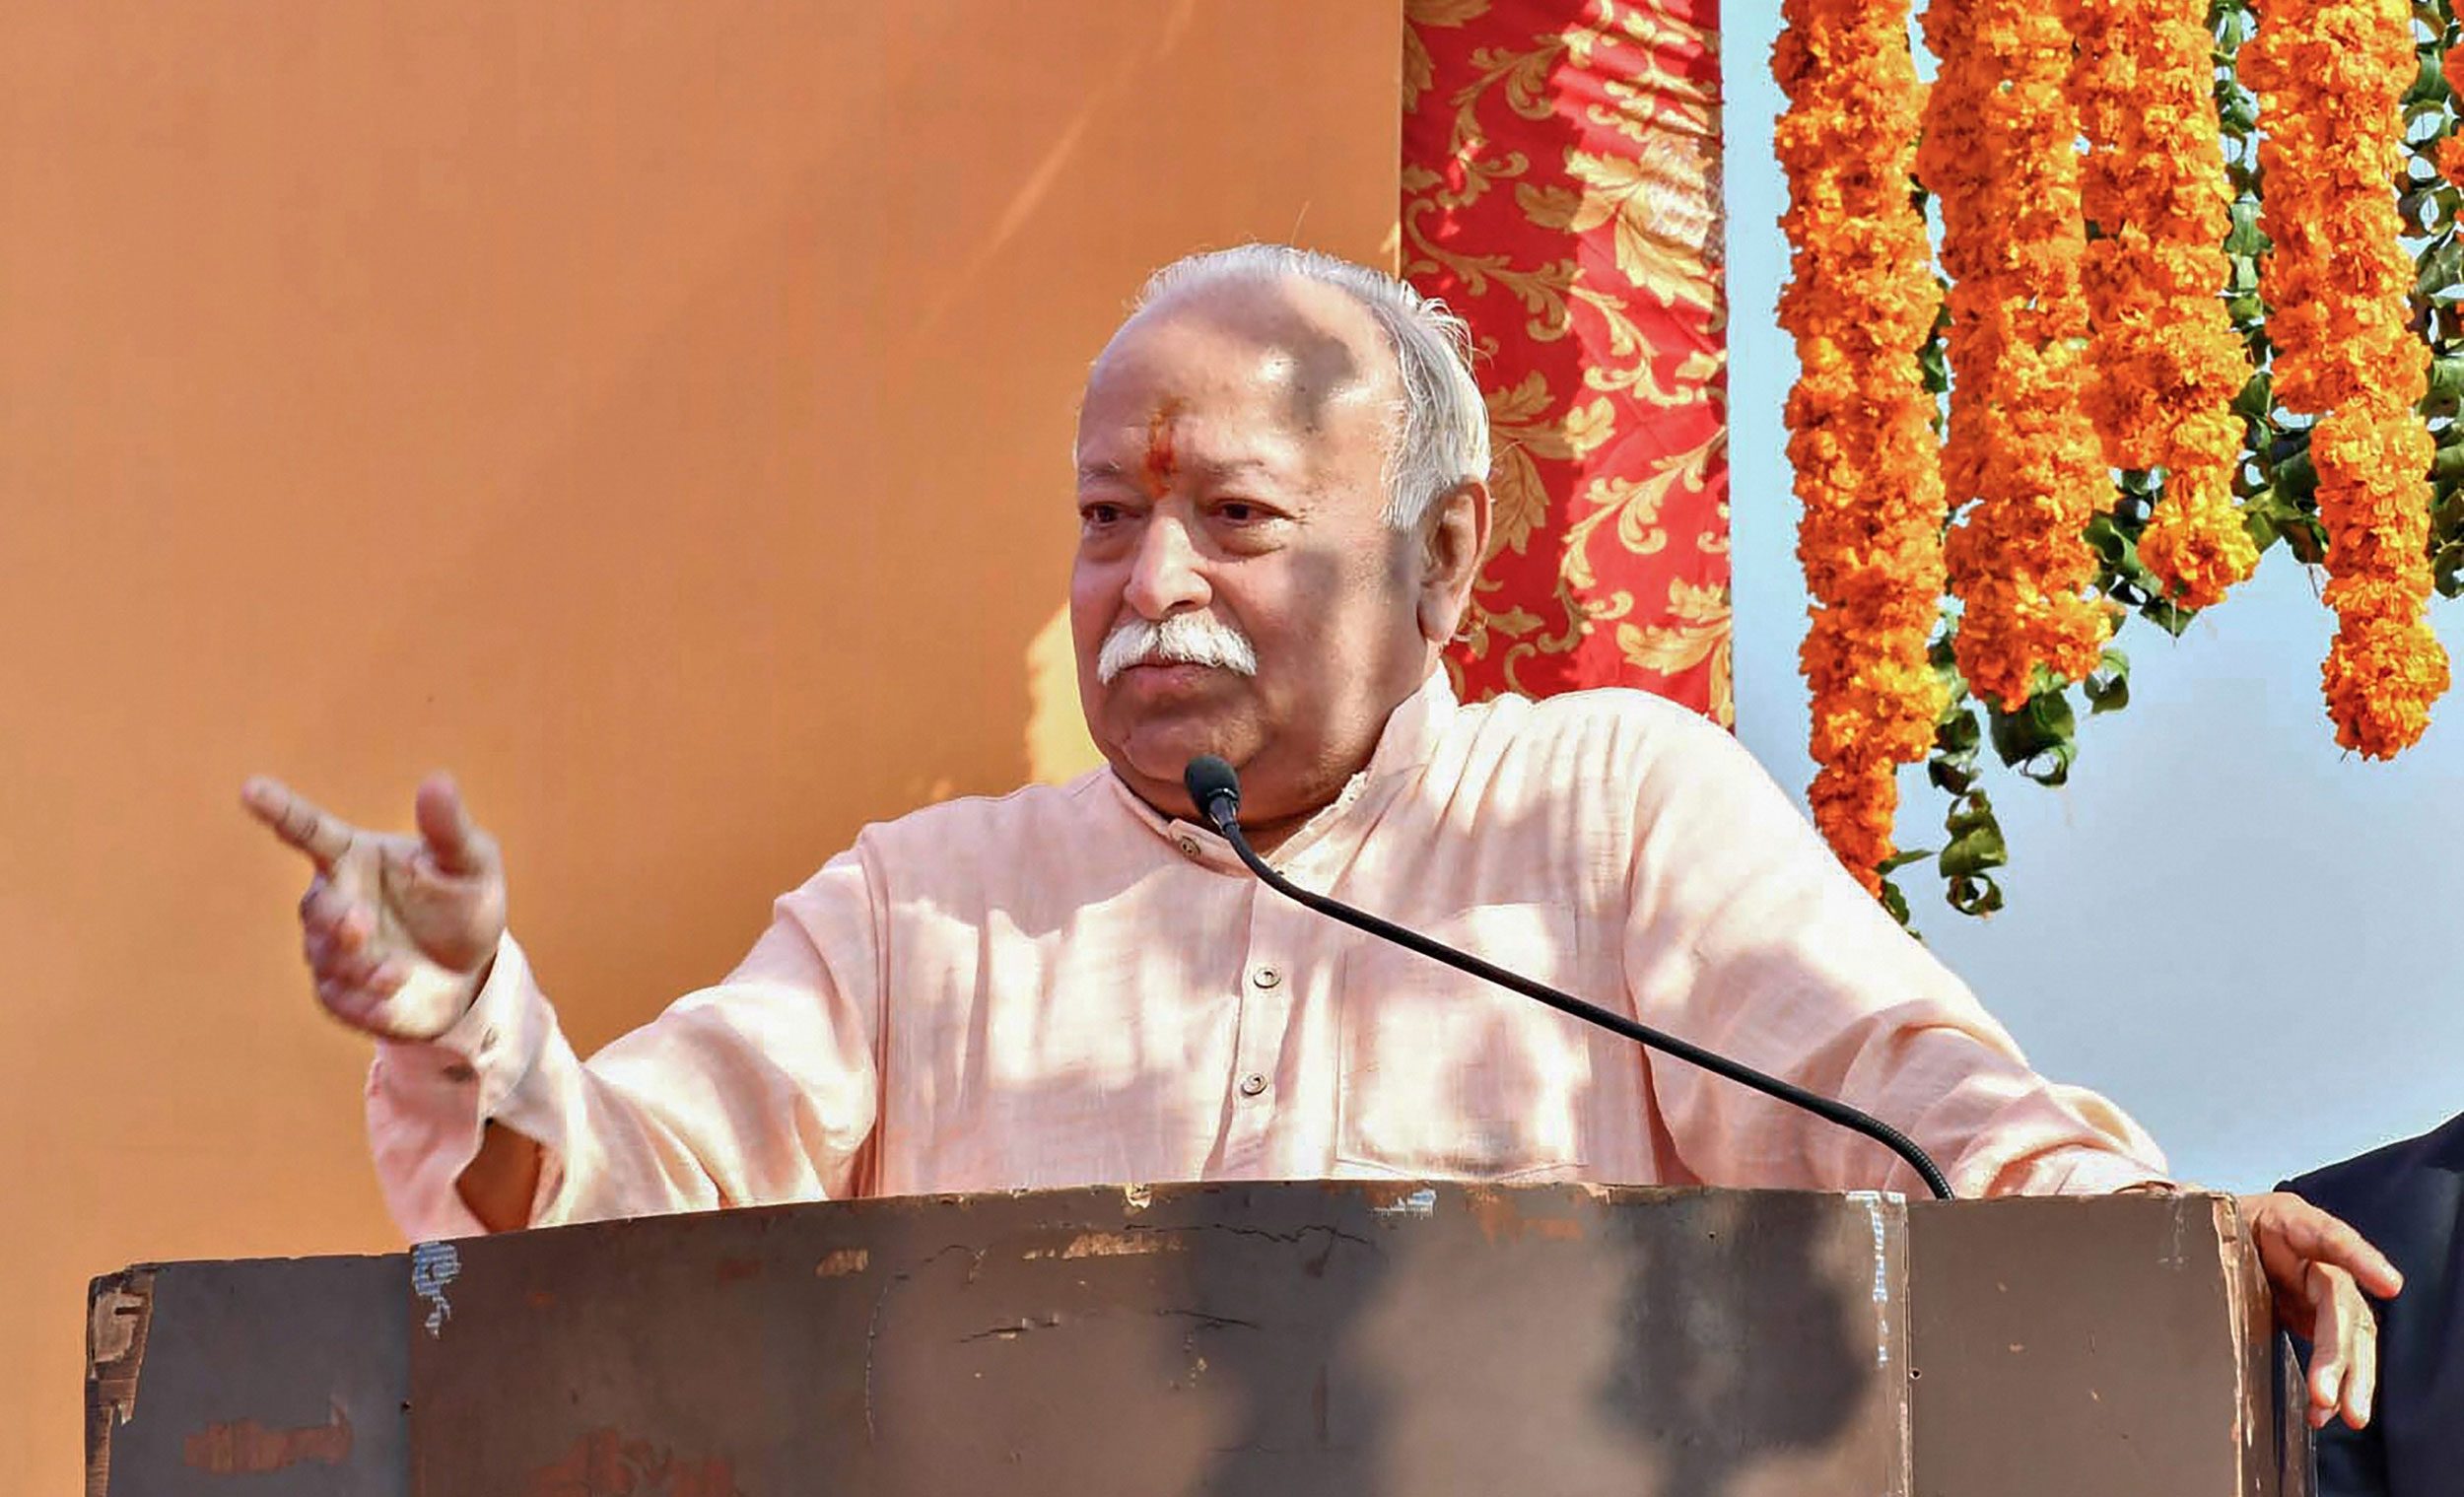 The National Council of Churches in India has termed the reference to the Bible by RSS chief Mohan Bhagwat with regard to mob lynching as